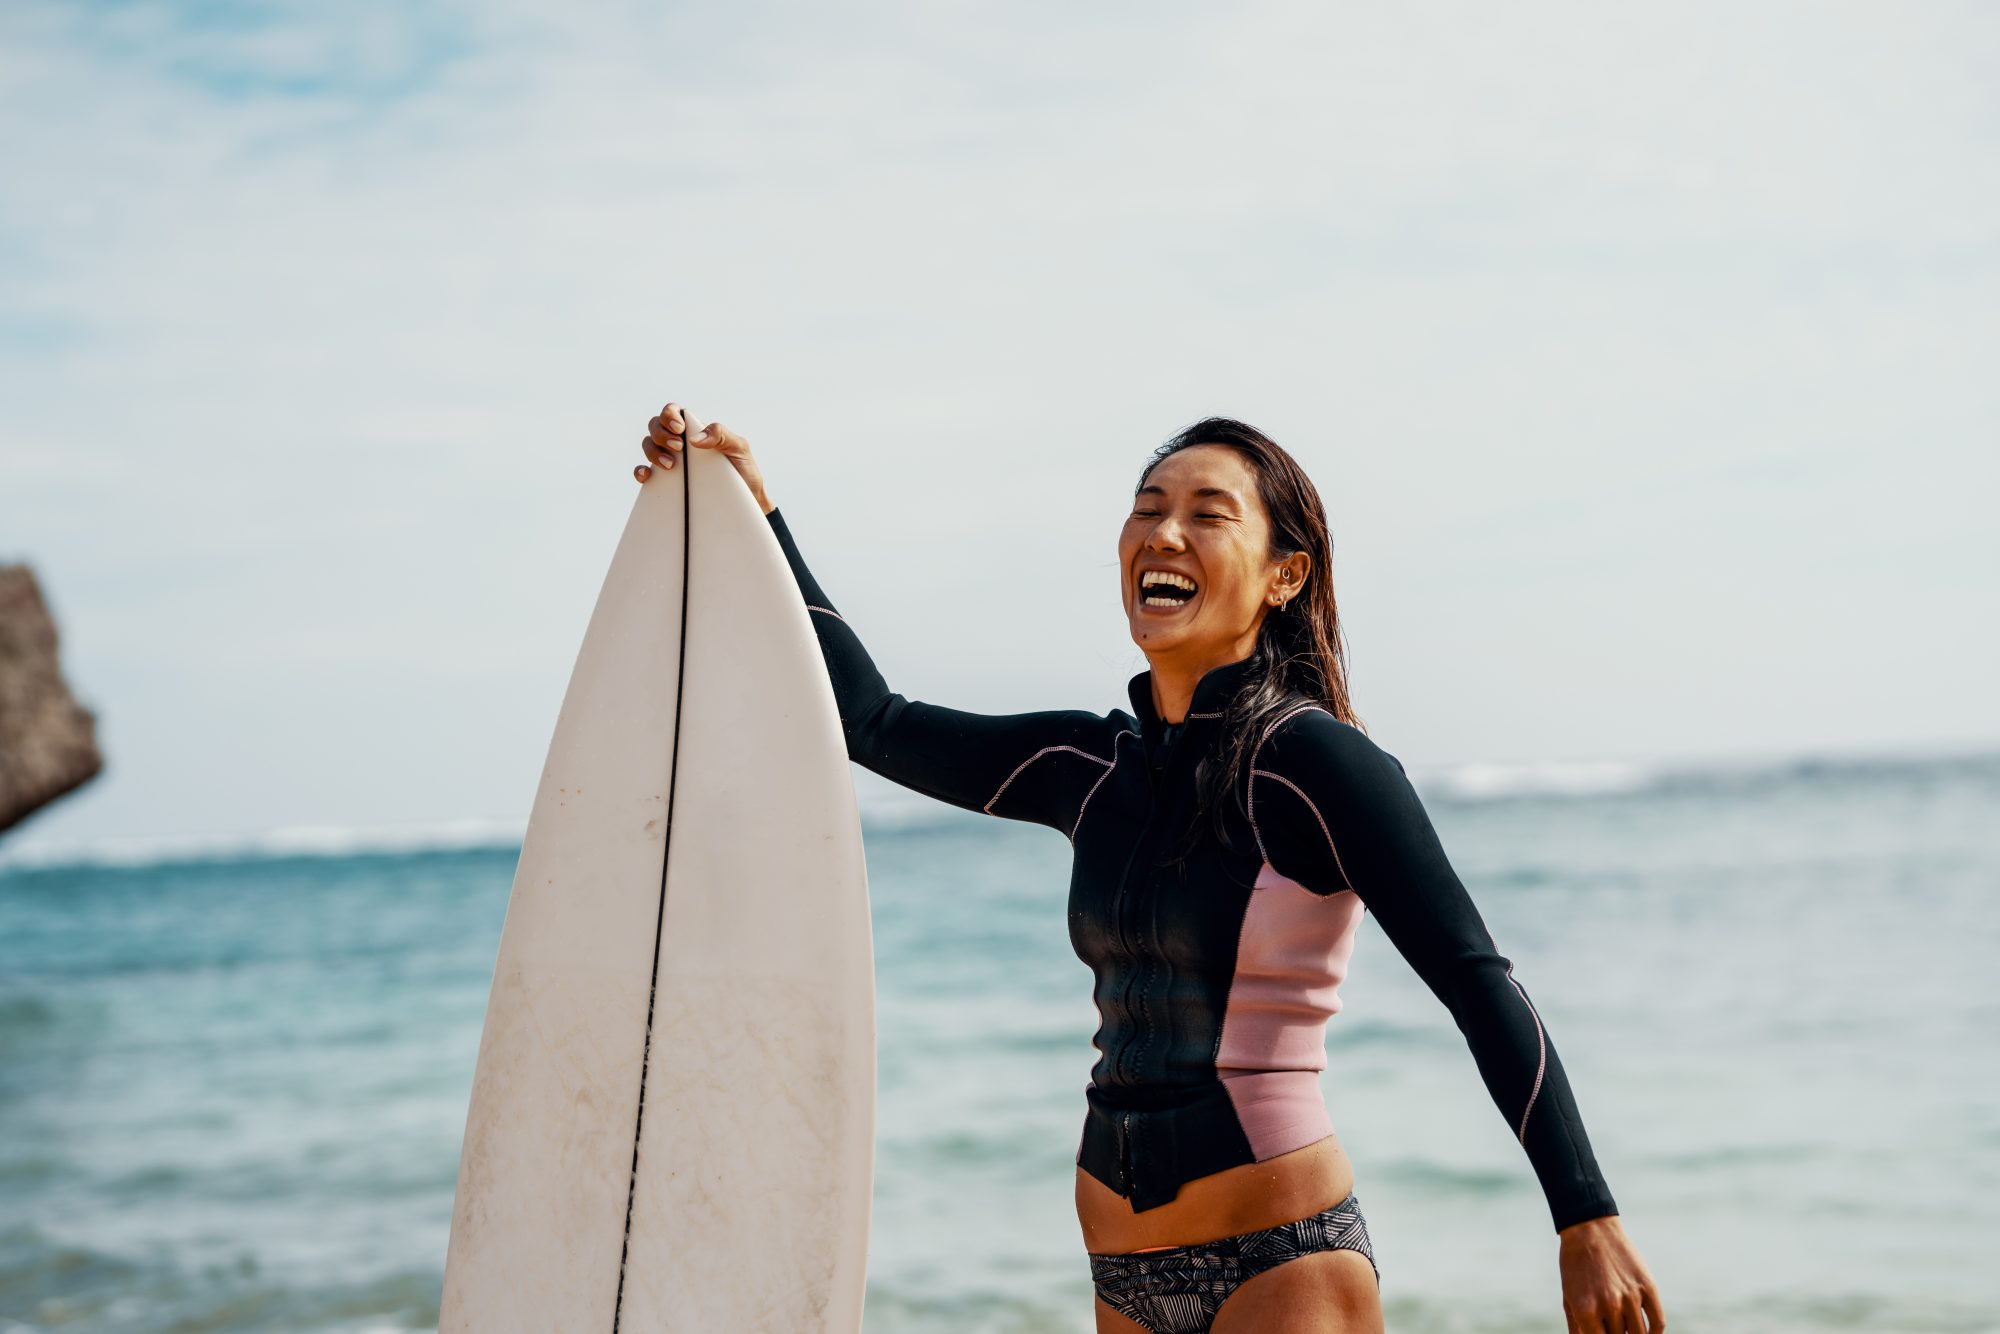 smiling woman at beach with surfboard